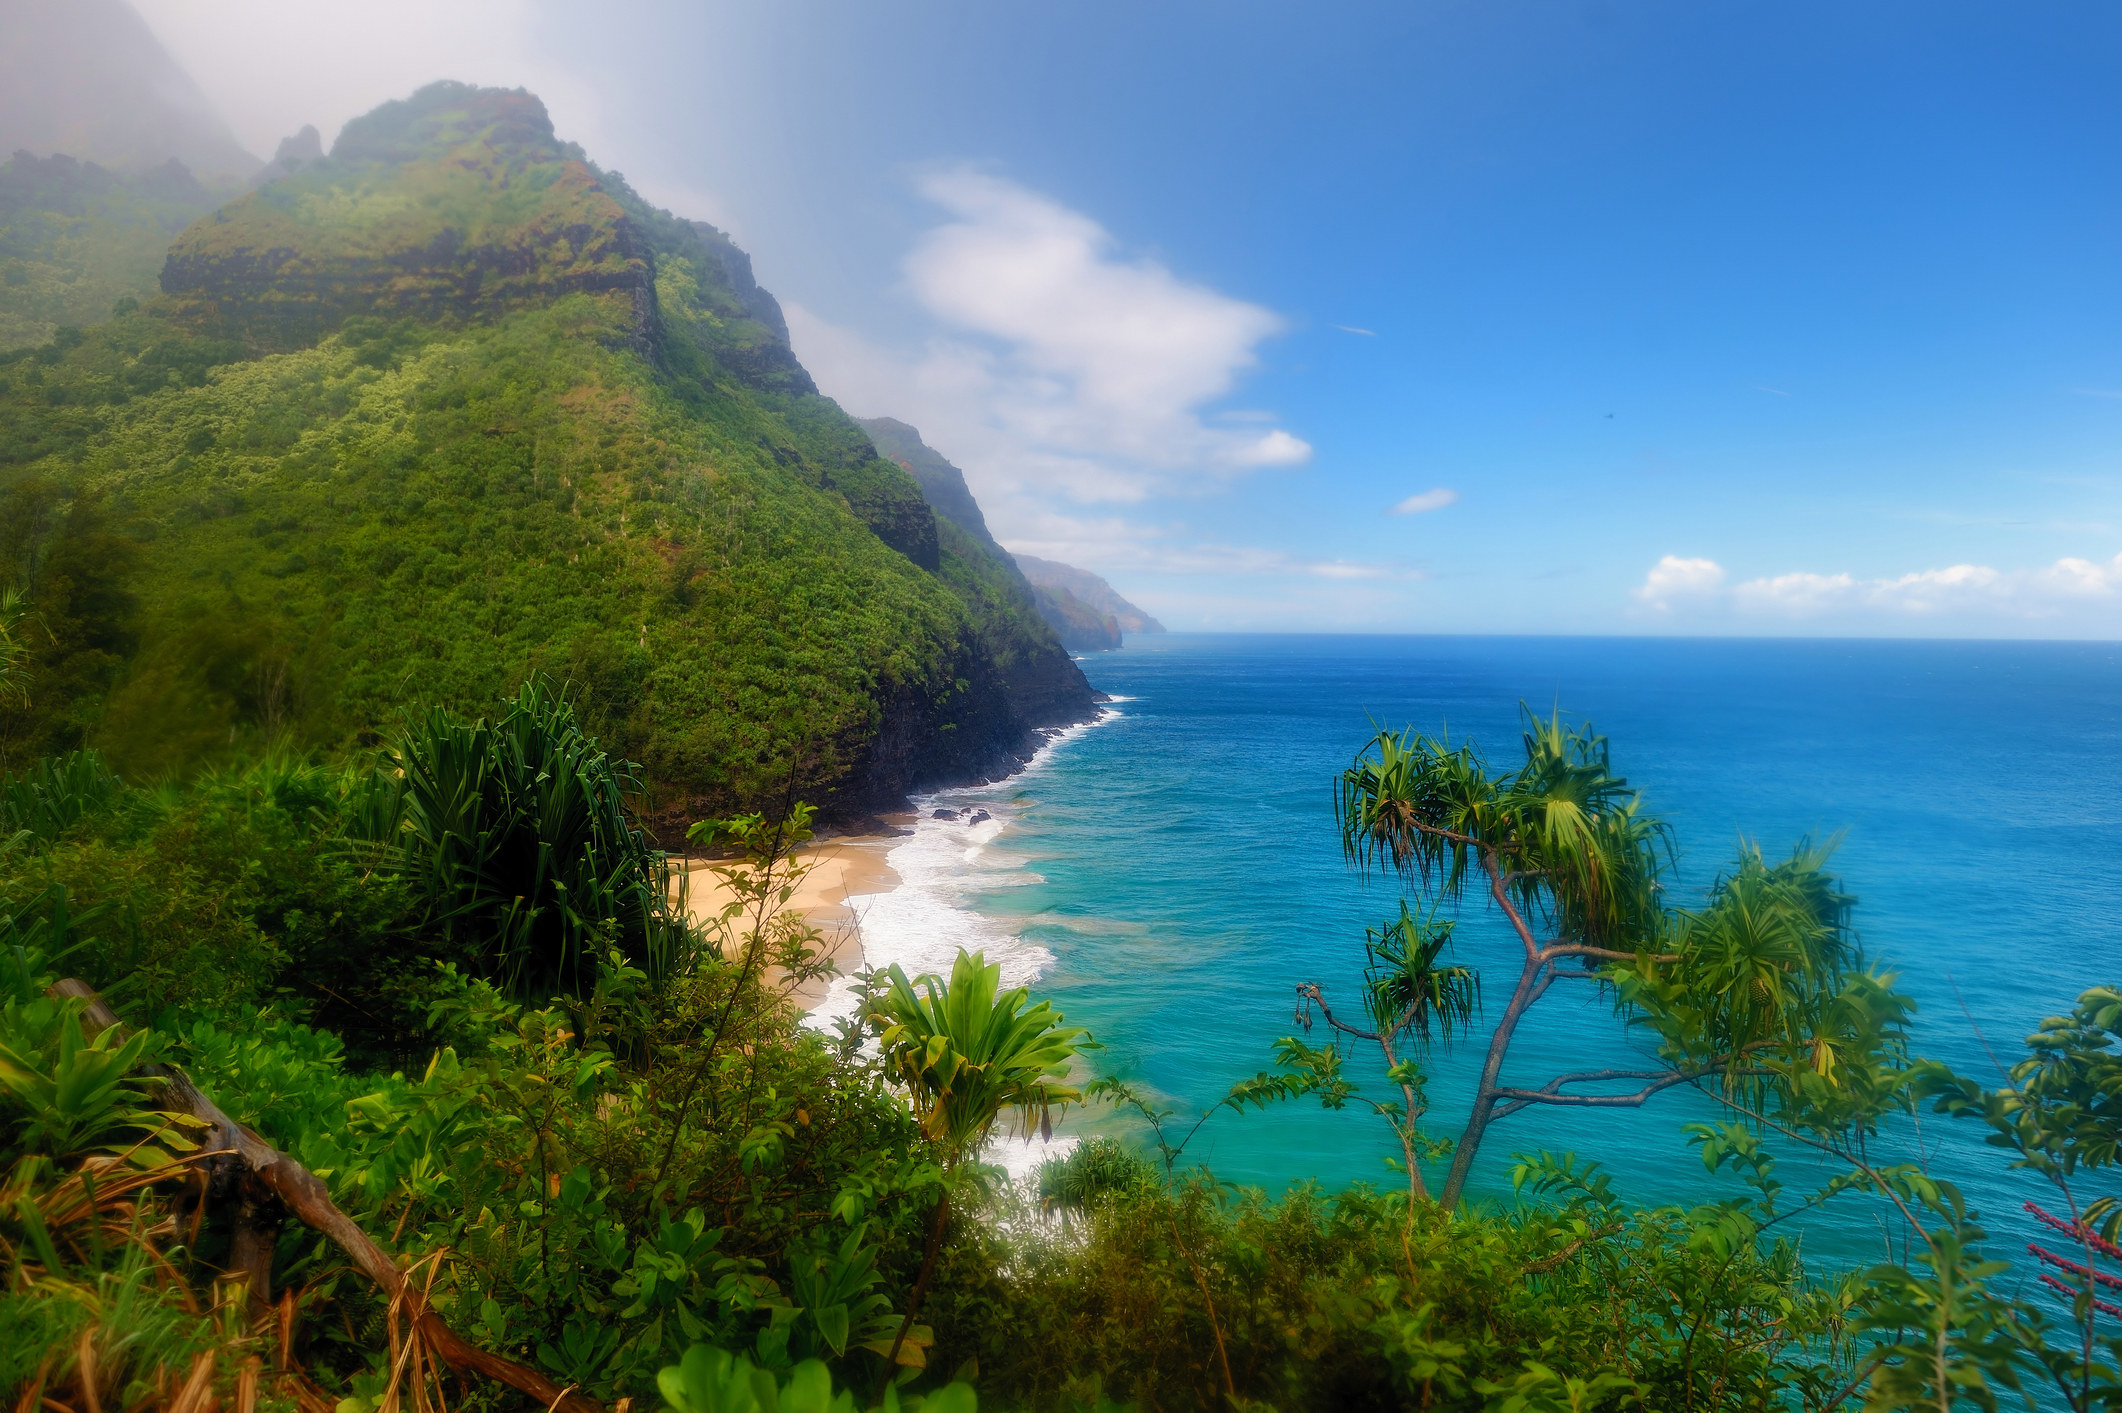 A view of lush mountains covered with greenery meeting the clear ocean and sandy shore